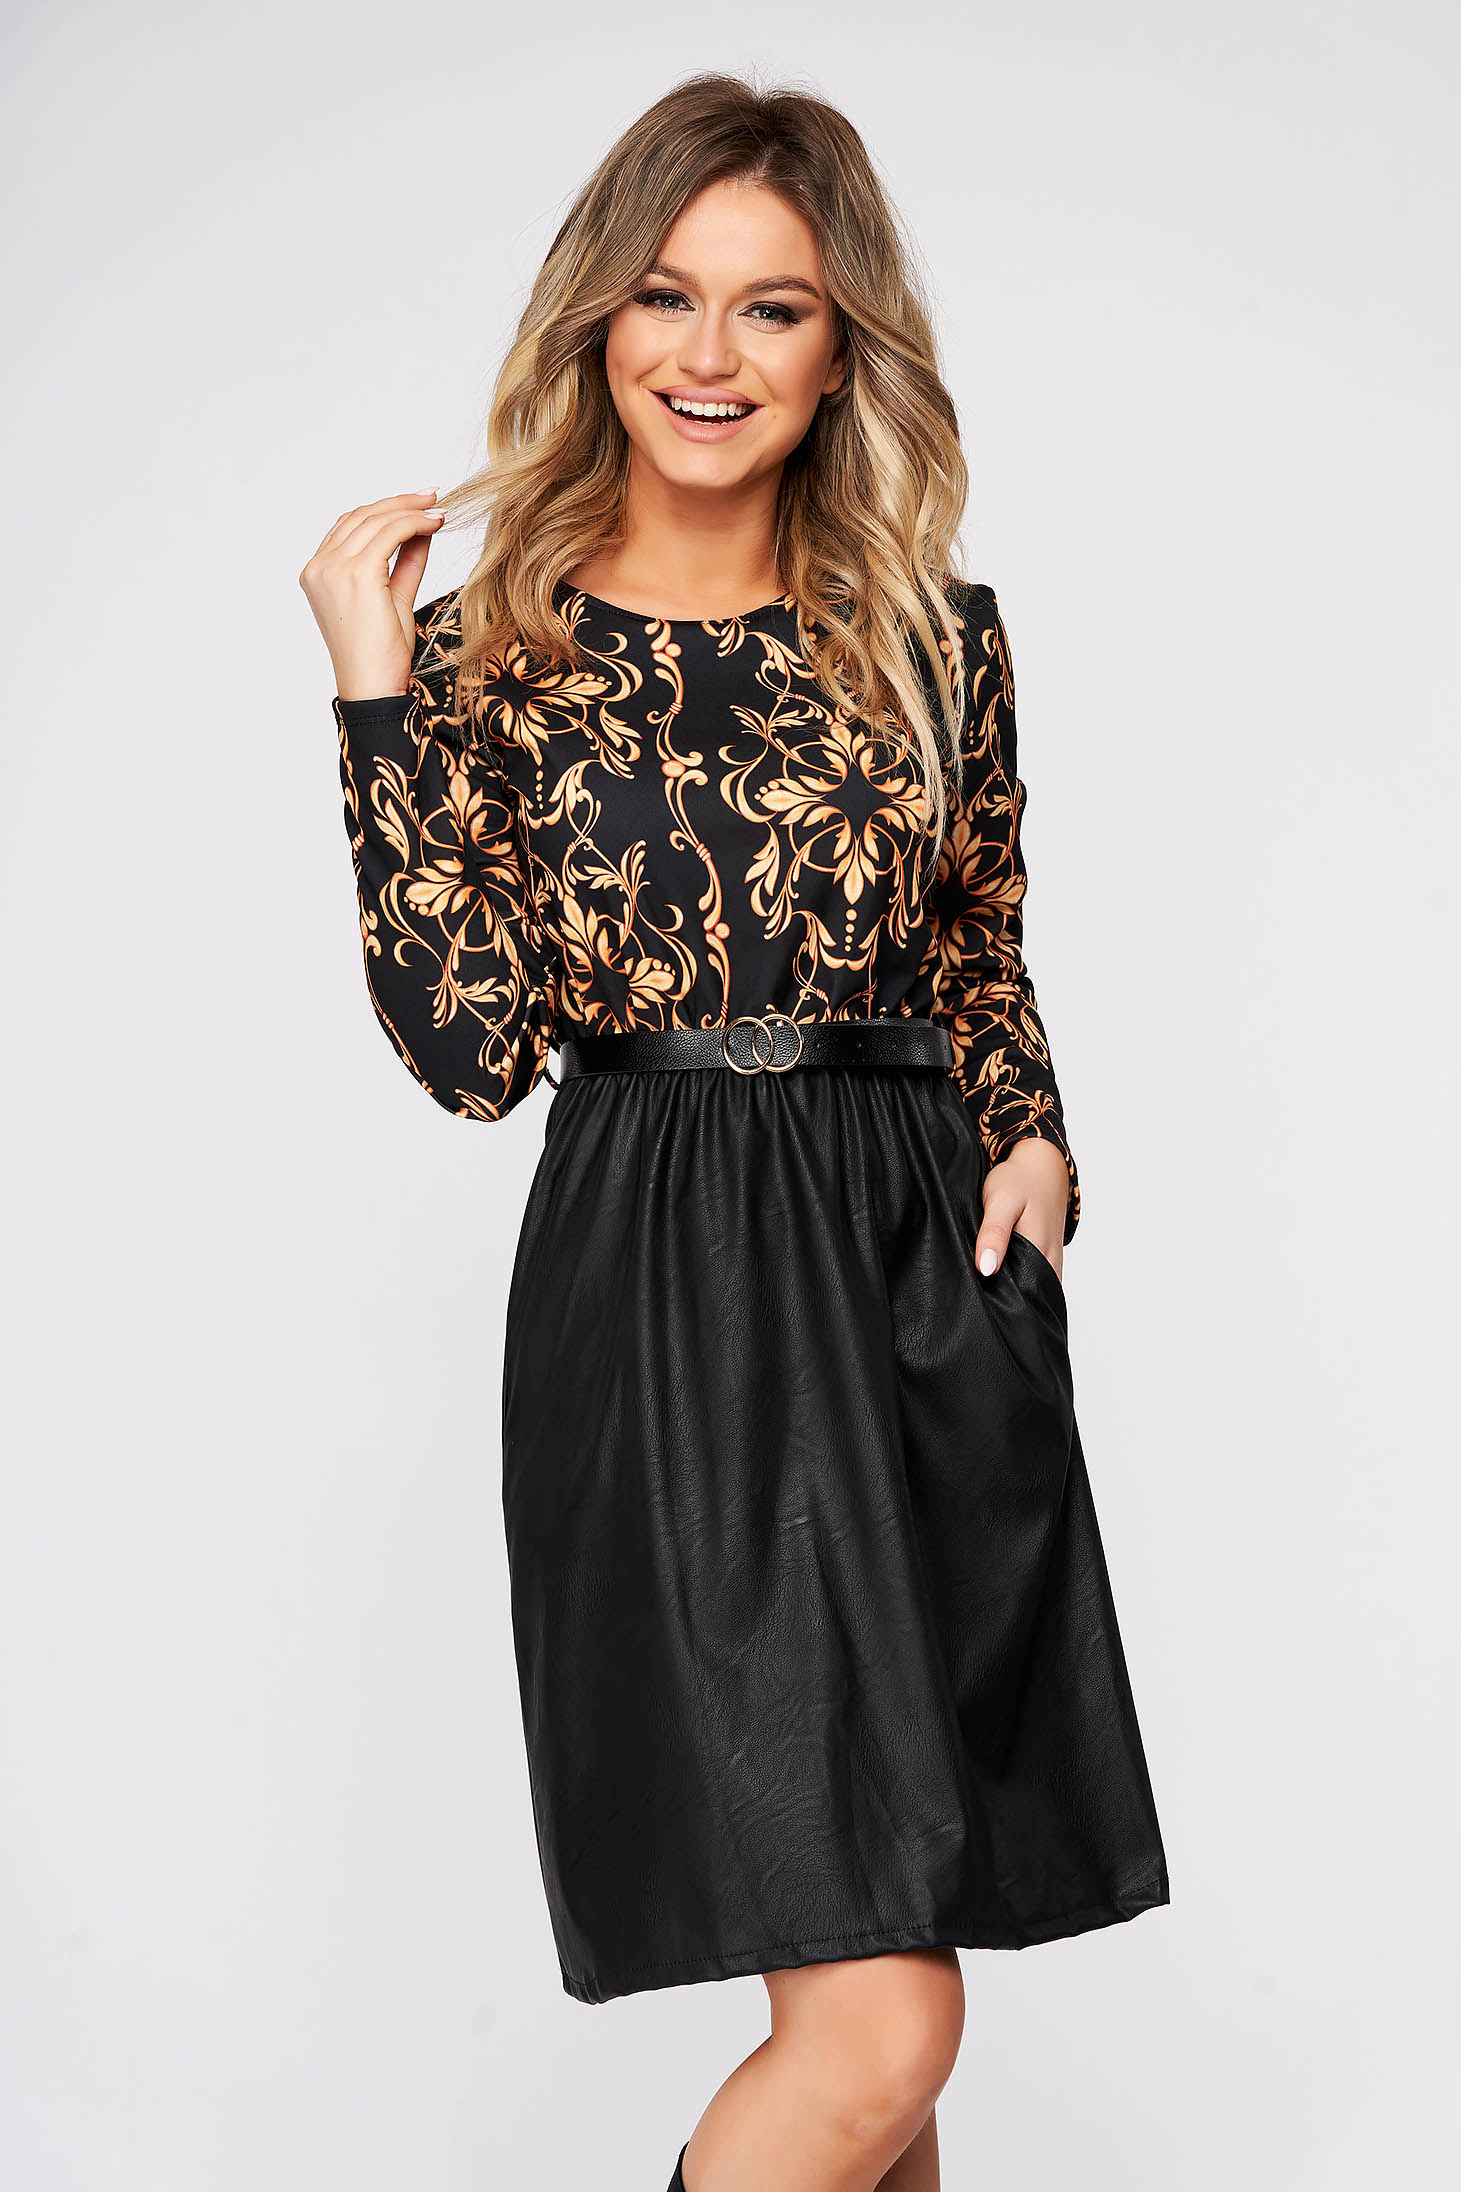 Black dress daily cloche with elastic waist accessorized with belt